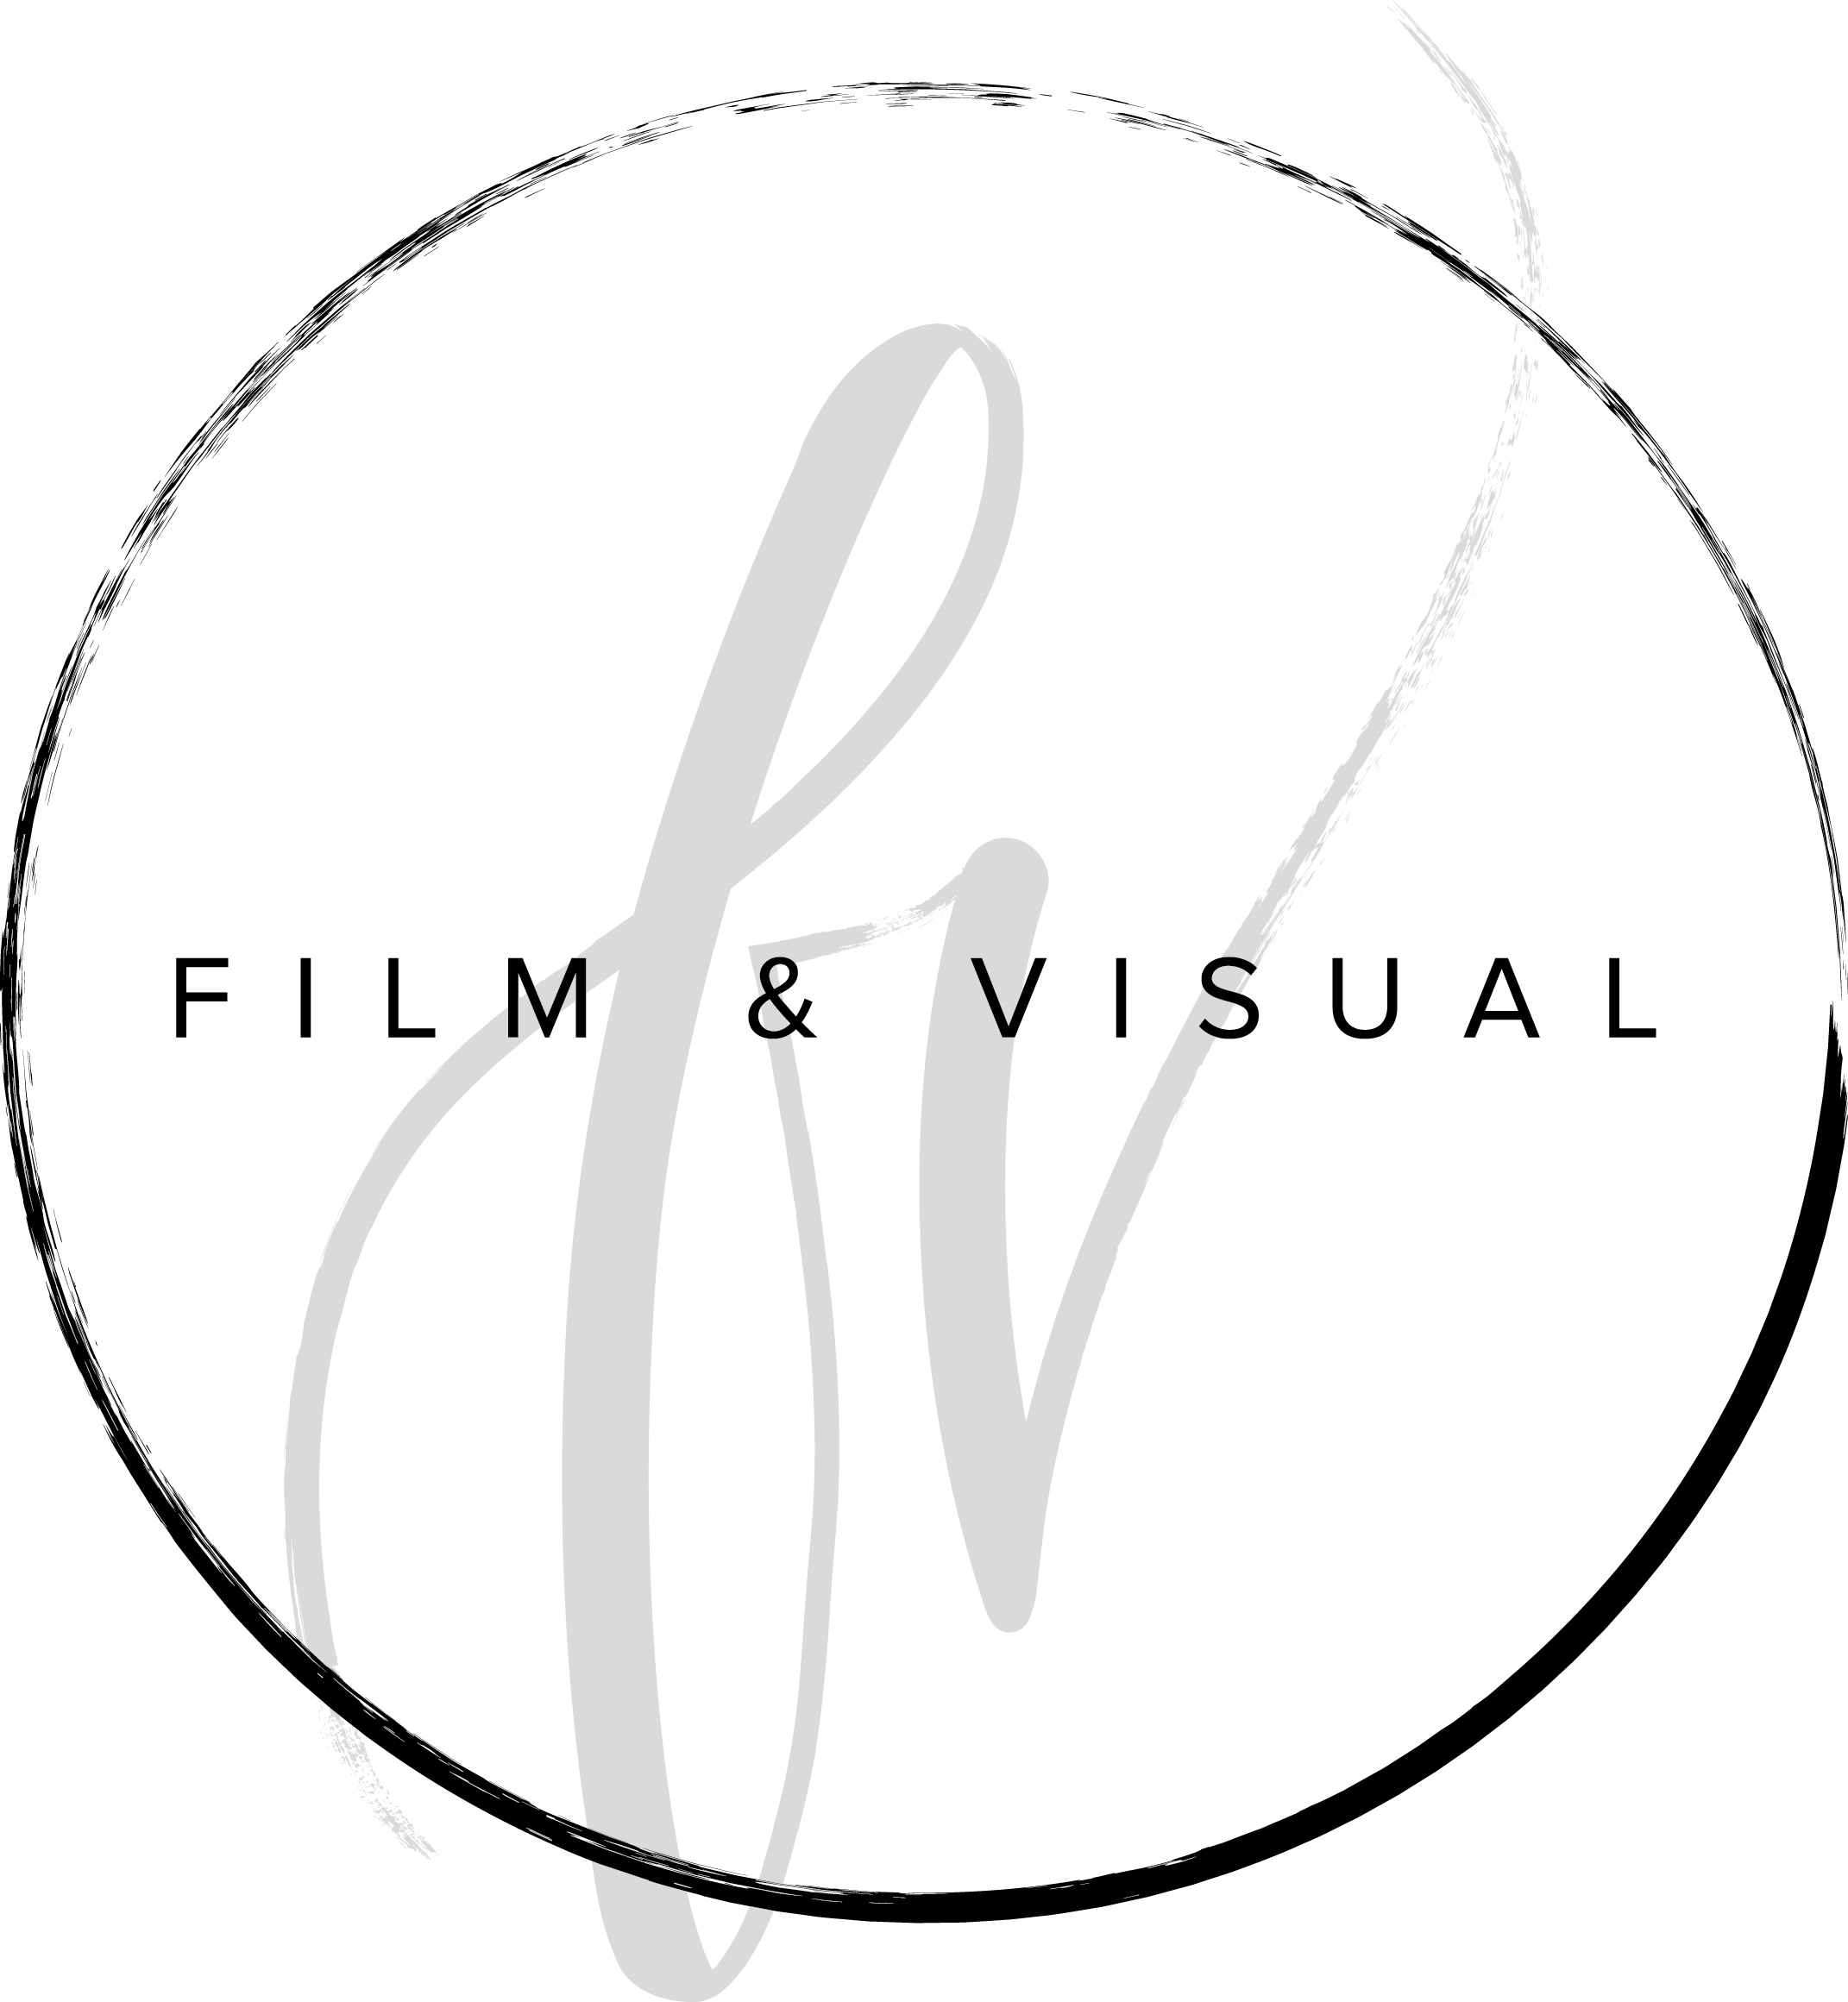 Film and Visual Logo